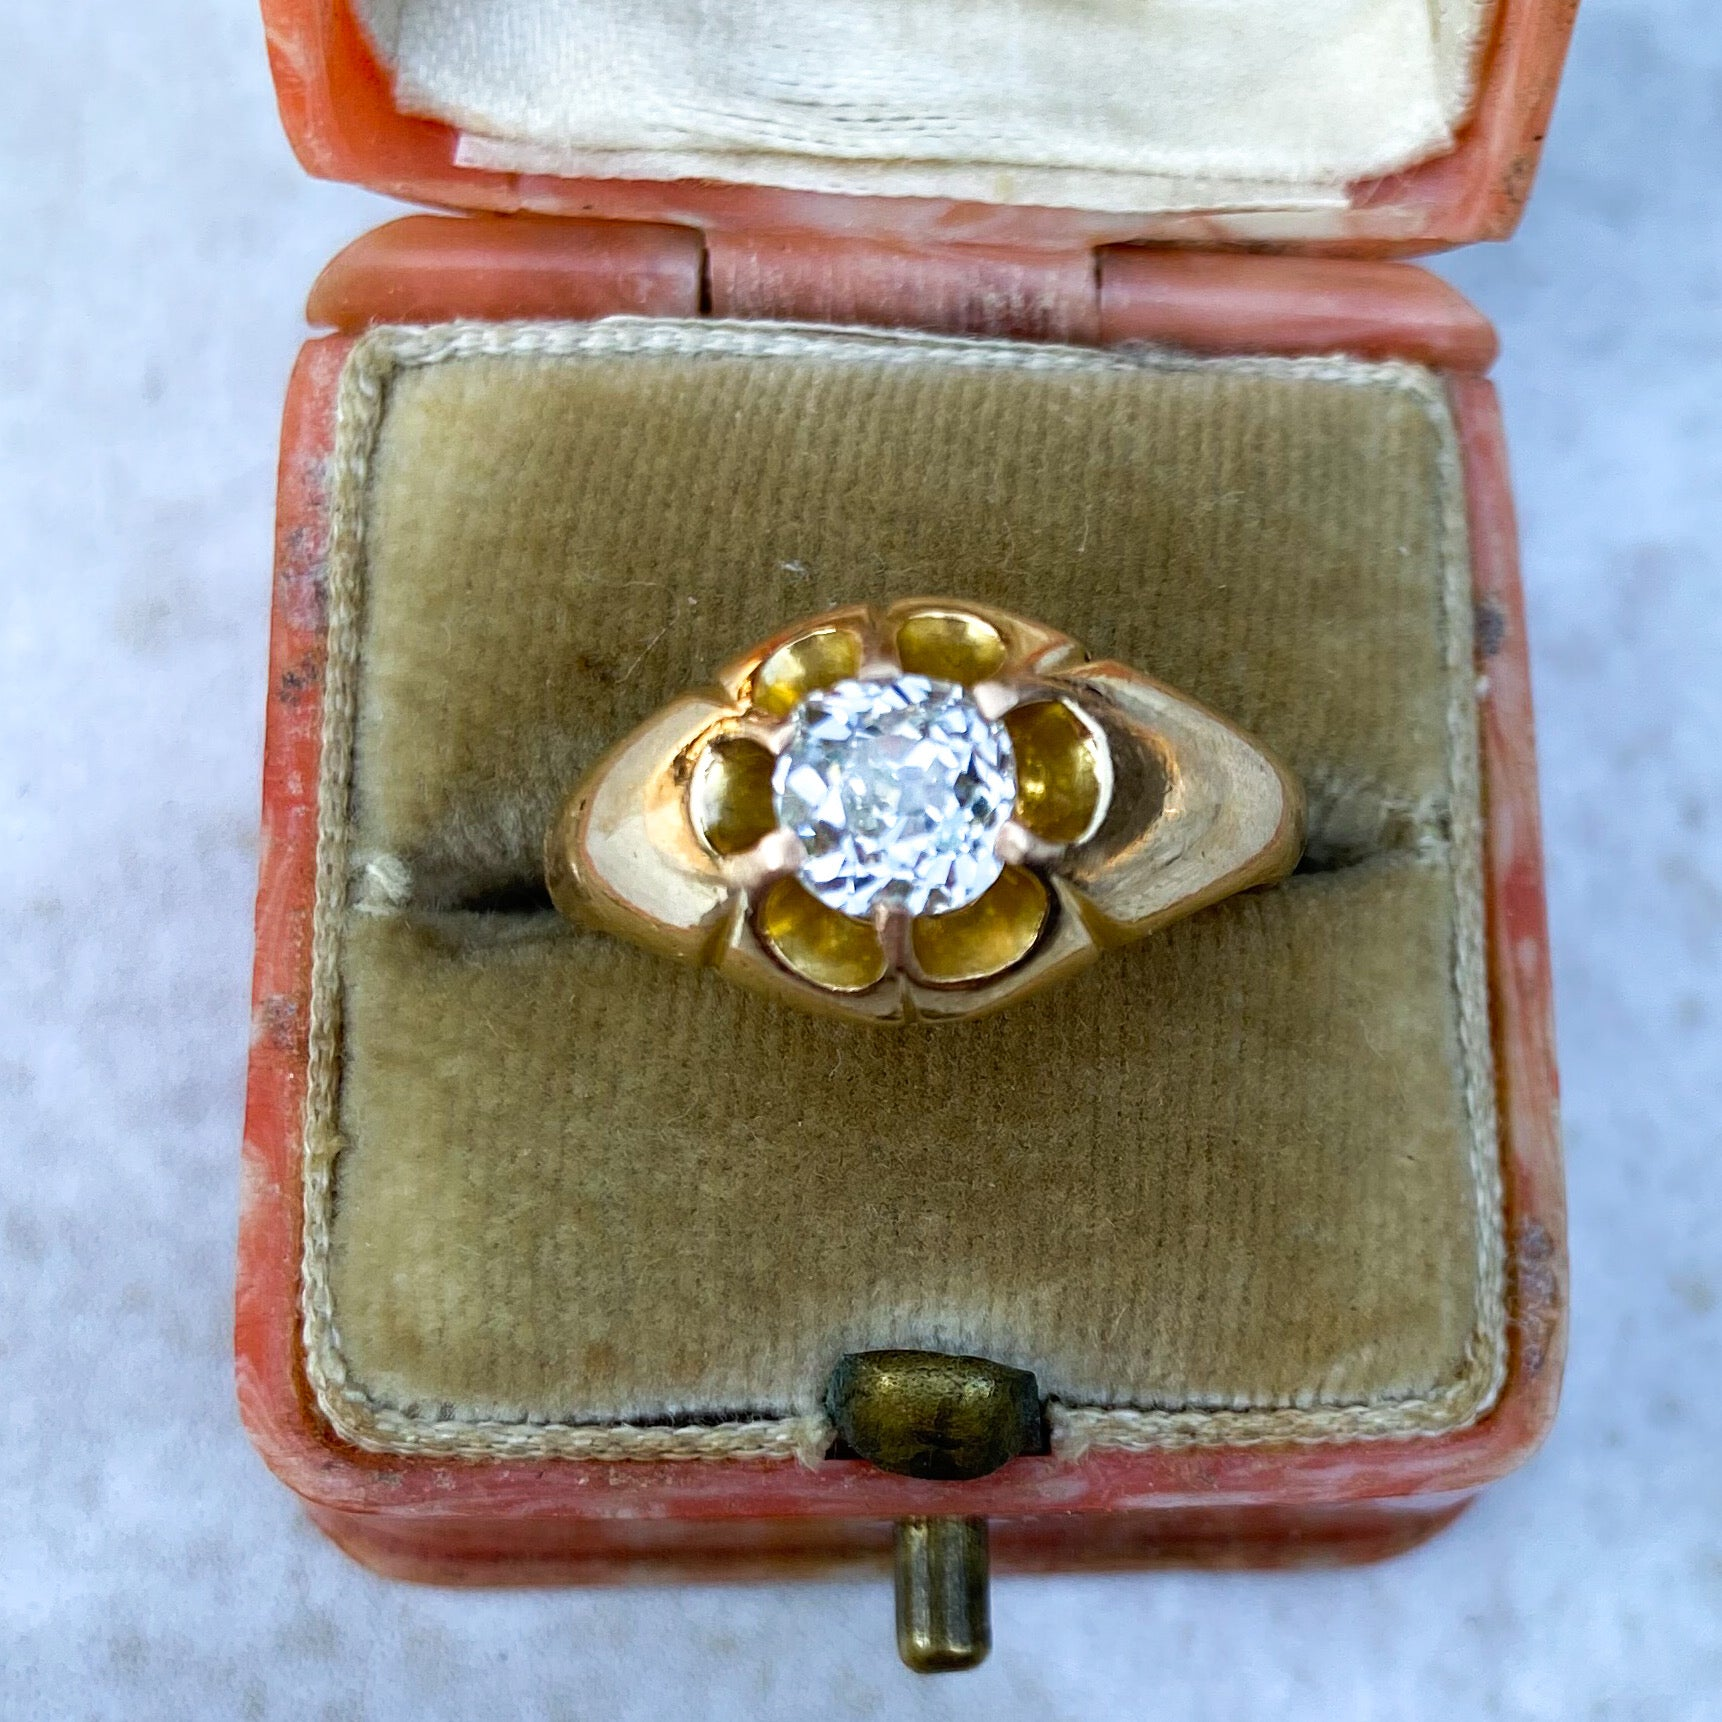 Heavy, 0.95ct Diamond Buttercup Gypsy Ring, 18ct Gold.1927